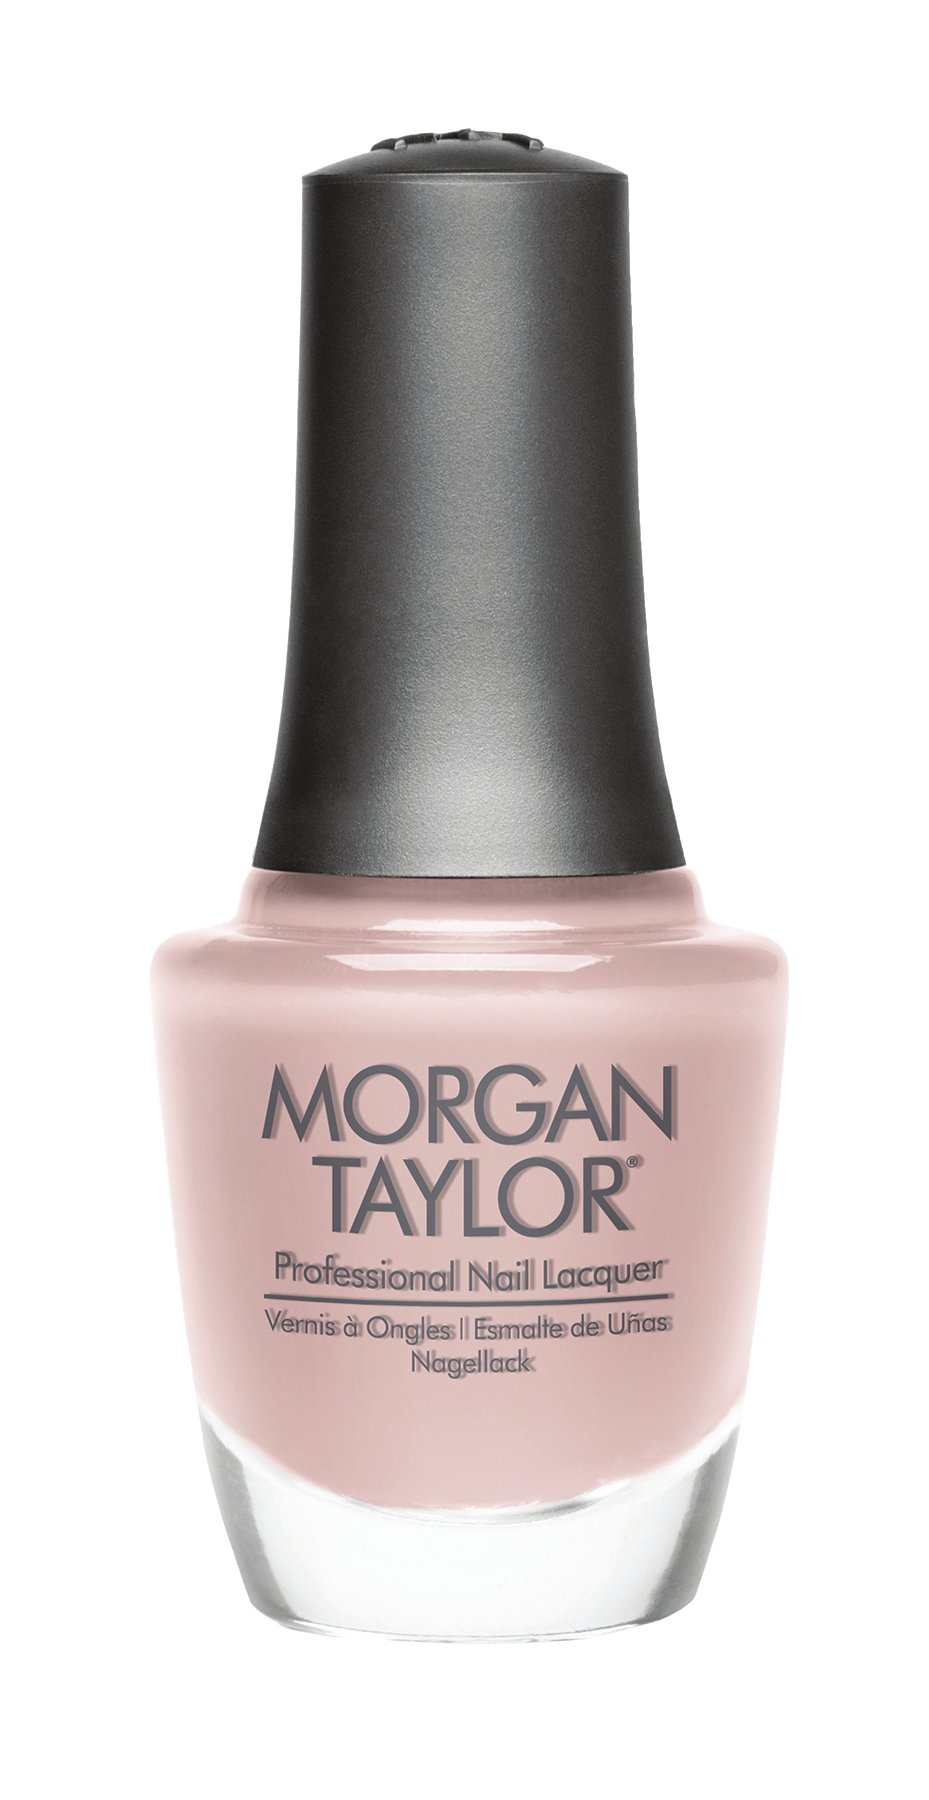 Morgan Taylor Prim-rose and  Proper: The latest take on the nude nail comes in the form of soft pastels and neutrals with shimmer. They're perfect for updating the French manicure so give that basic pink a rest.